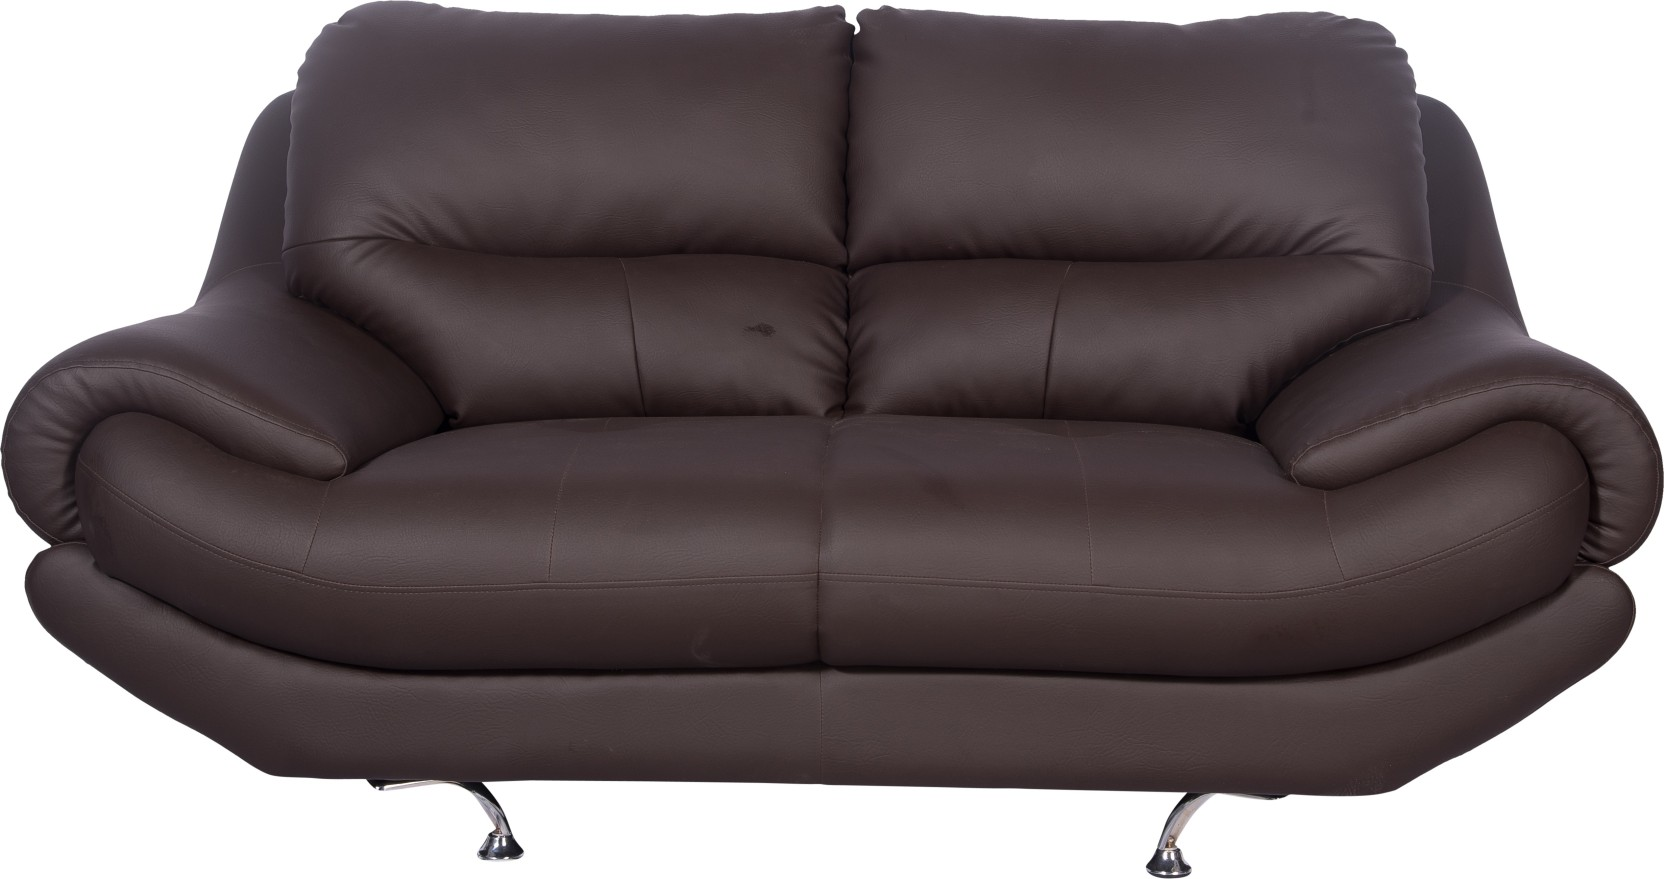 Godrej Interio Euro Pro Leatherette 2 Seater Sofa Price In India Drkevin Leather Shoes 13301 Maroon 43 Home